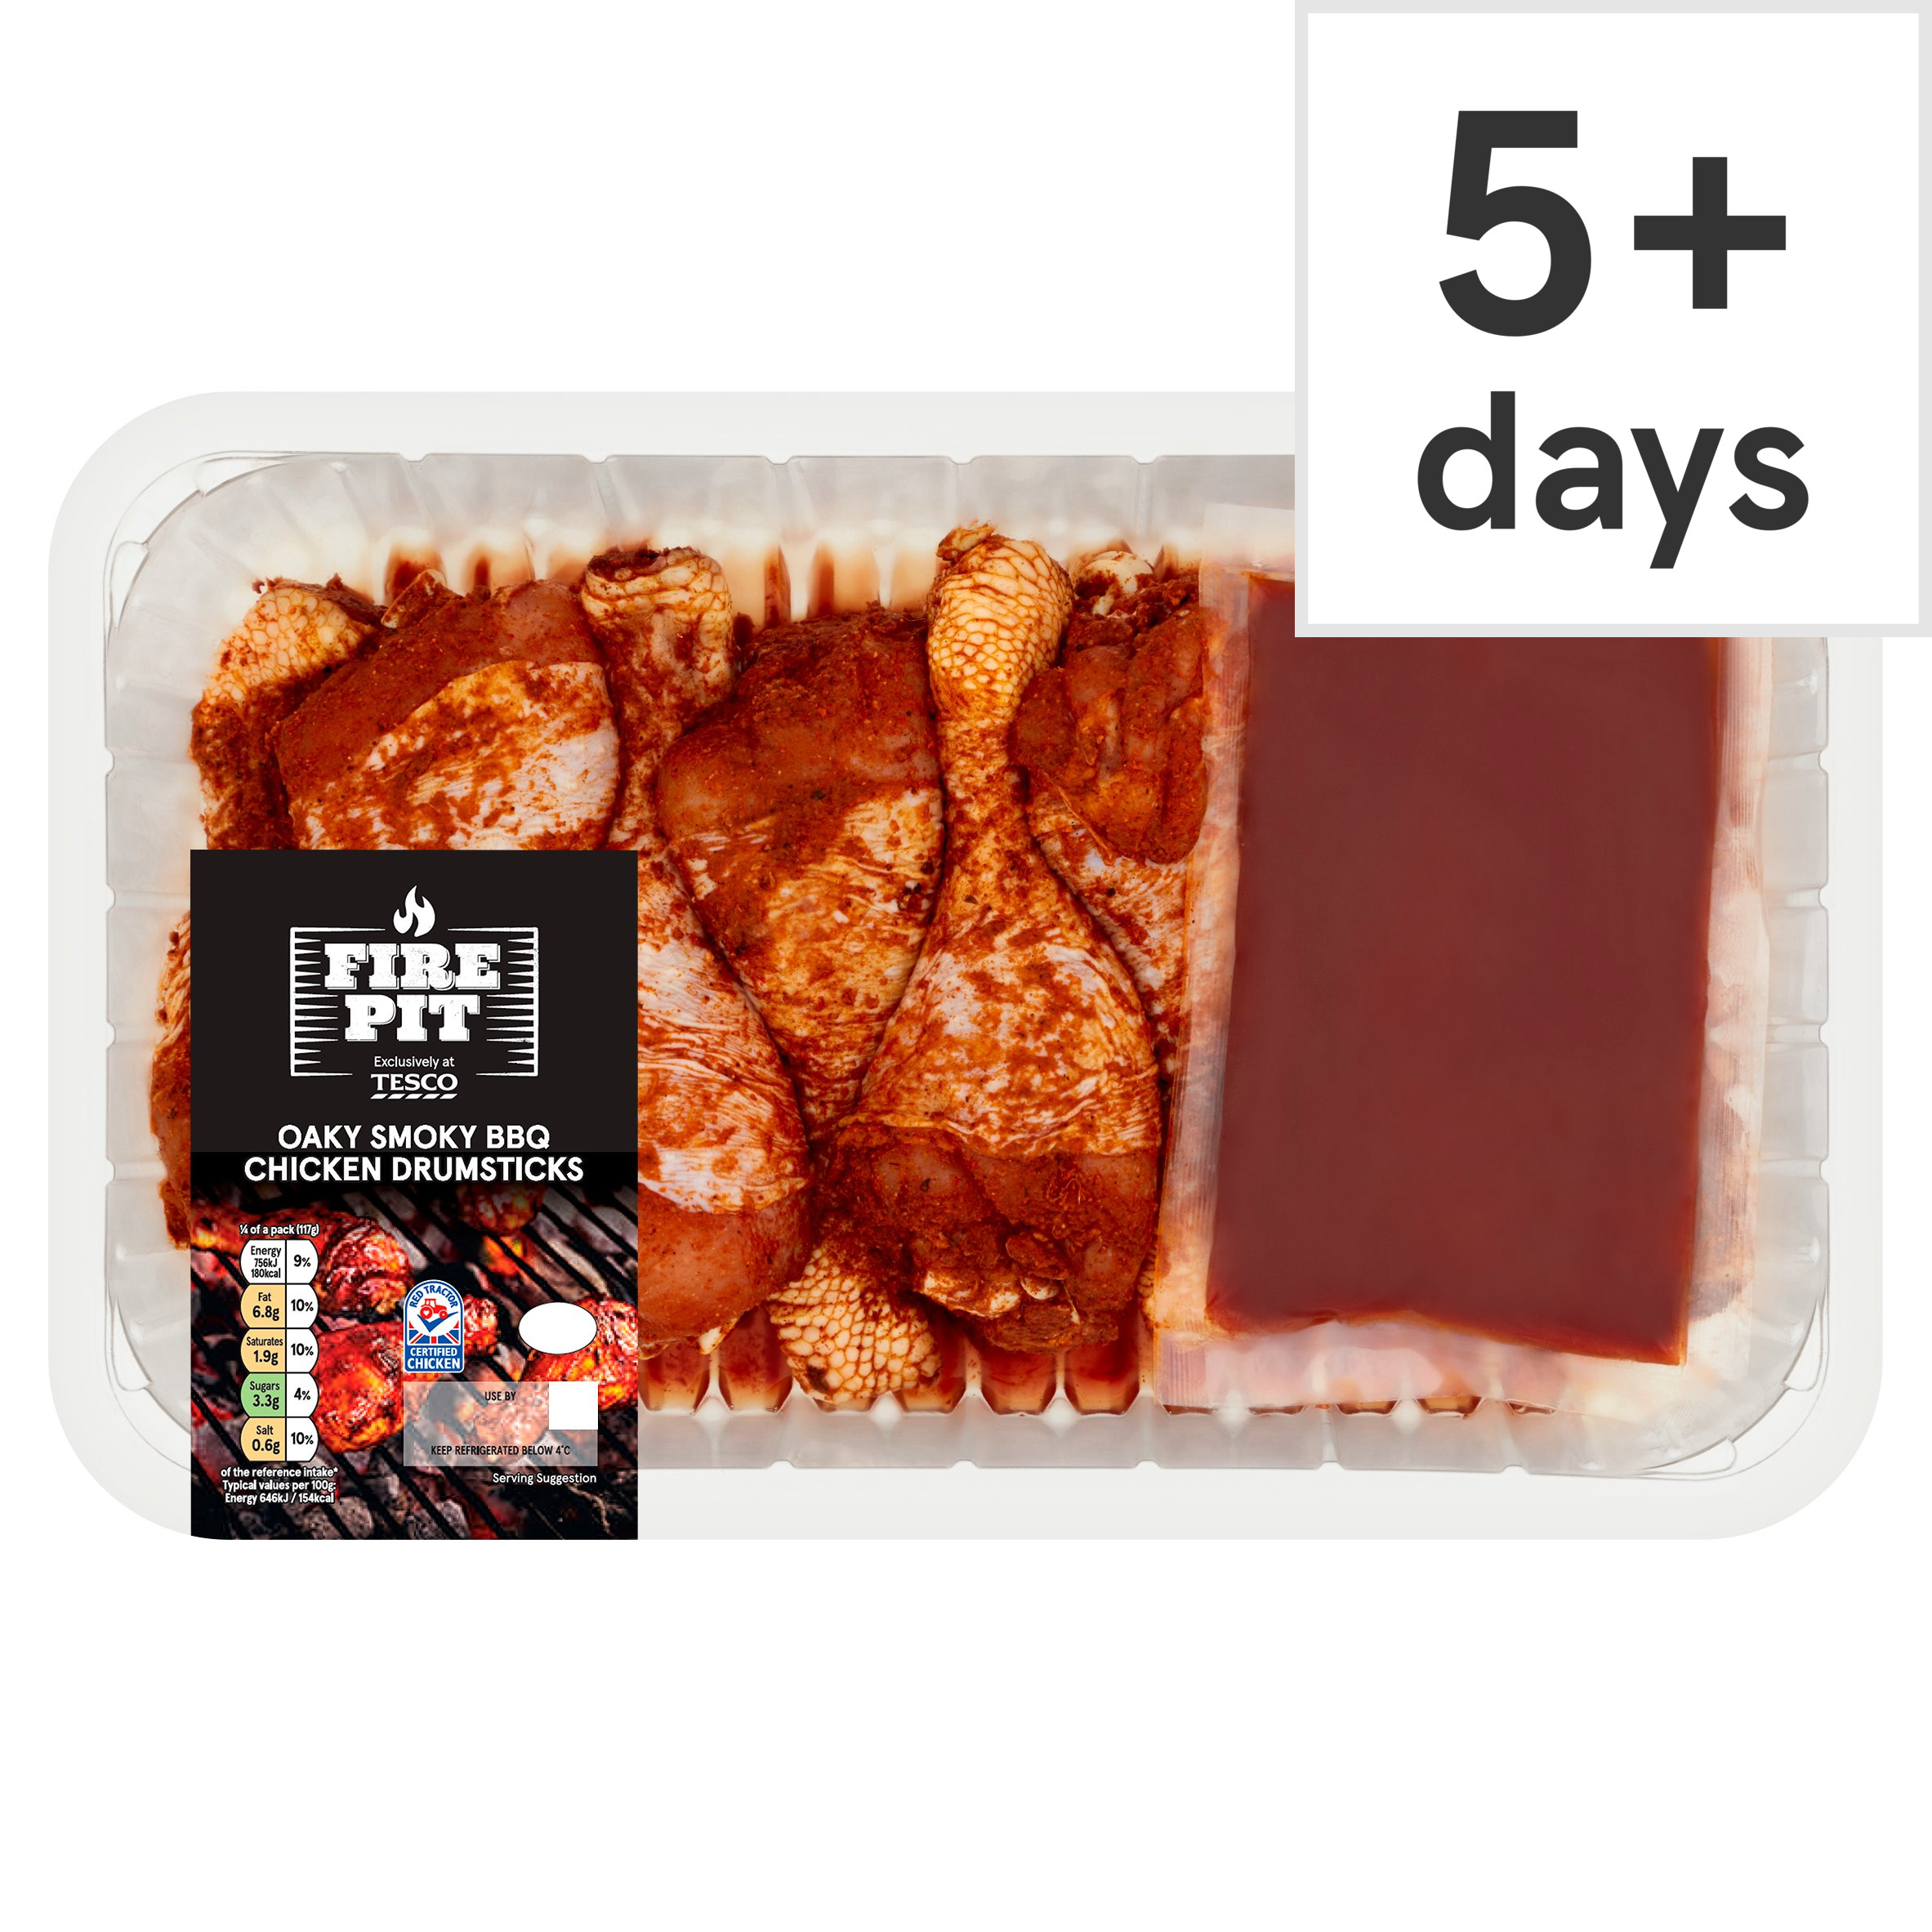 Tesco Fire Pit Oaky Smoky Bbq Chicken Drums 900G